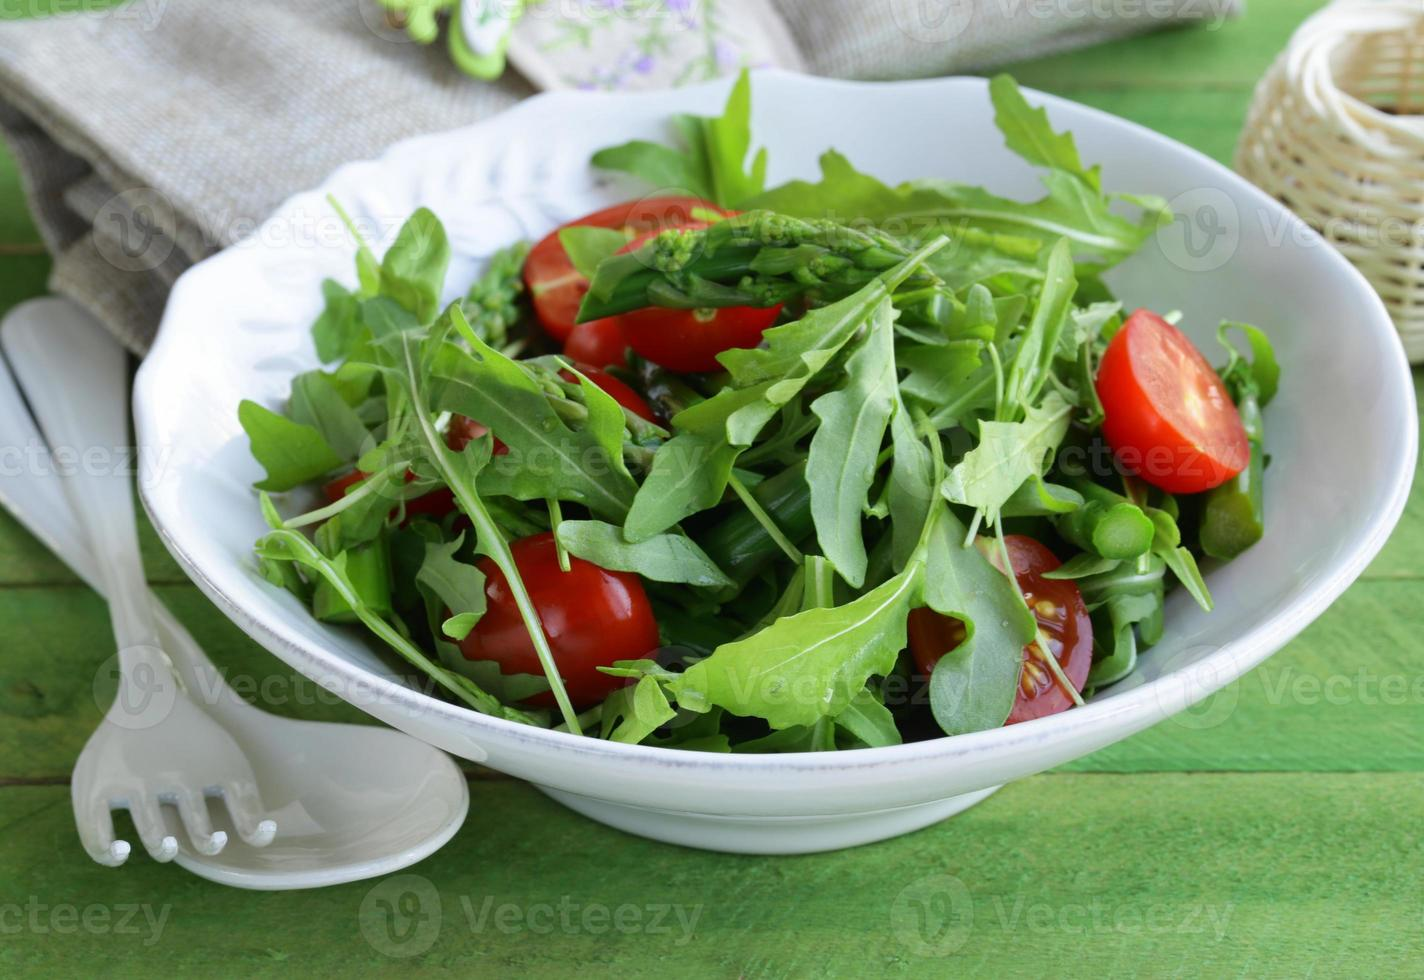 salad with arugula and tomatoes served on a wooden table photo